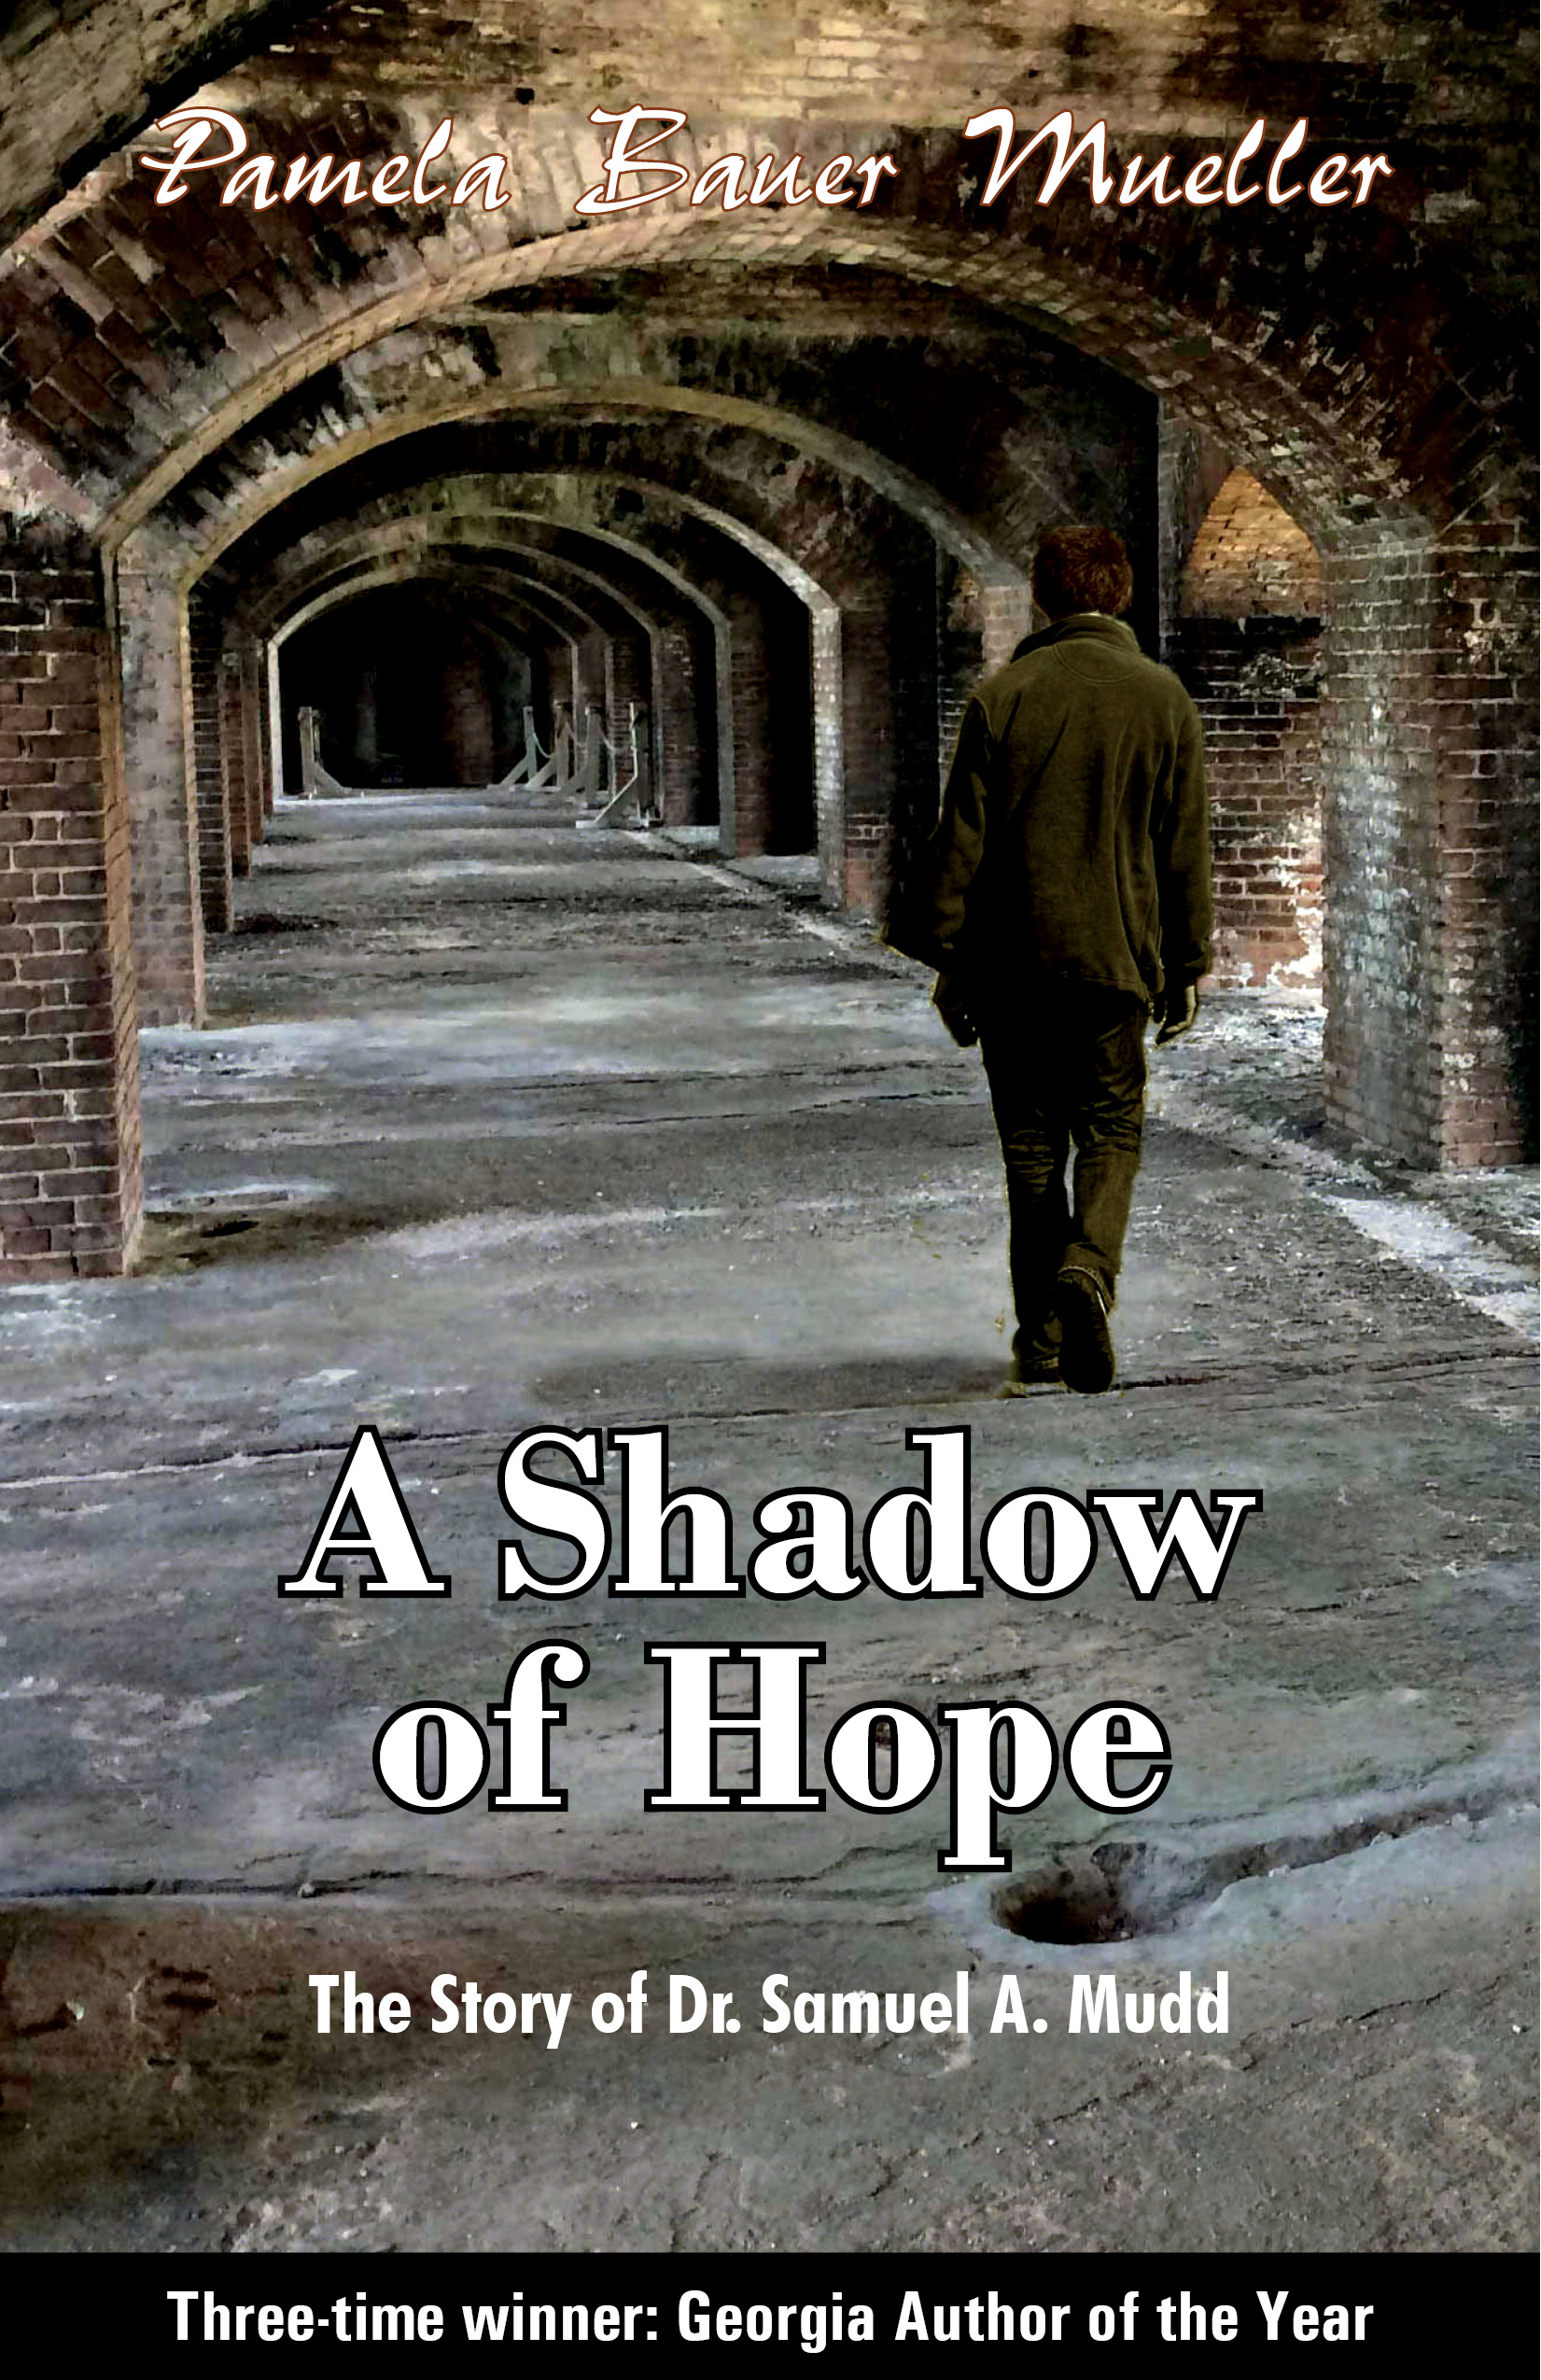 A Shadow of Hope